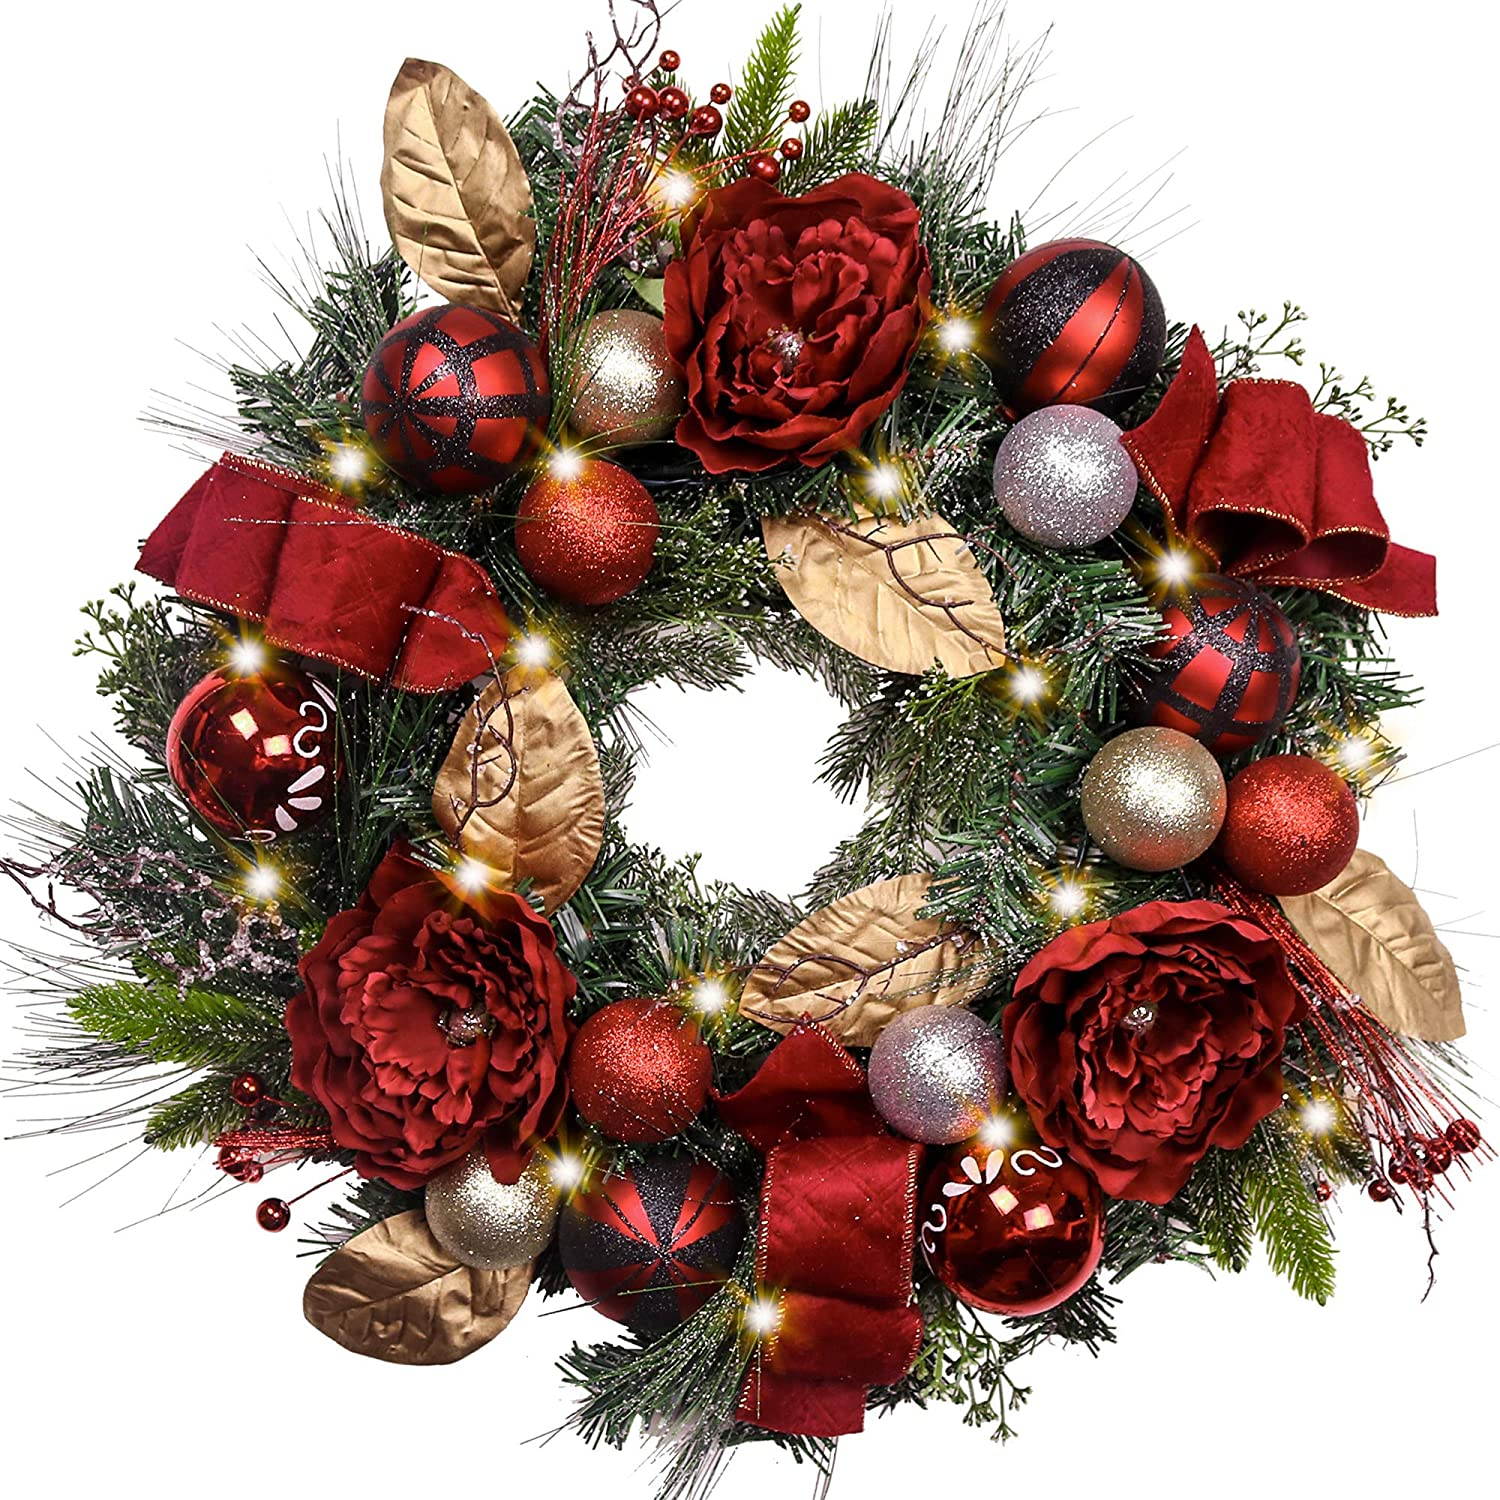 Christmas Wreath.Valery Madelyn Pre Lit 24 Trendy Red And Black Christmas Wreath With Ball Ornaments And Ribbon Battery Operated 20 Led Lights